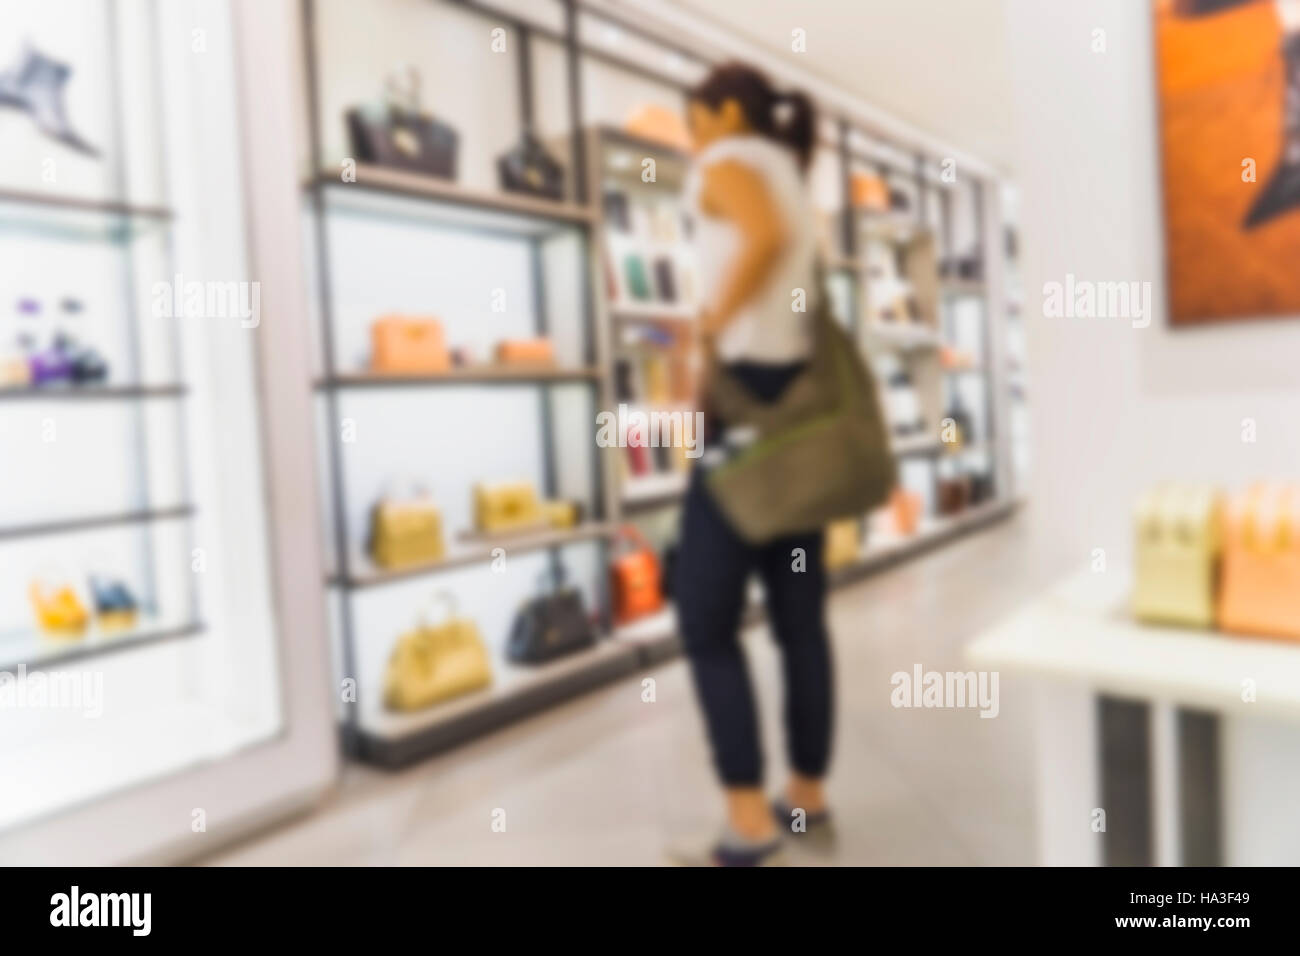 abstract blur of women select the bag on shelf - can use to display or montage on product - Stock Image